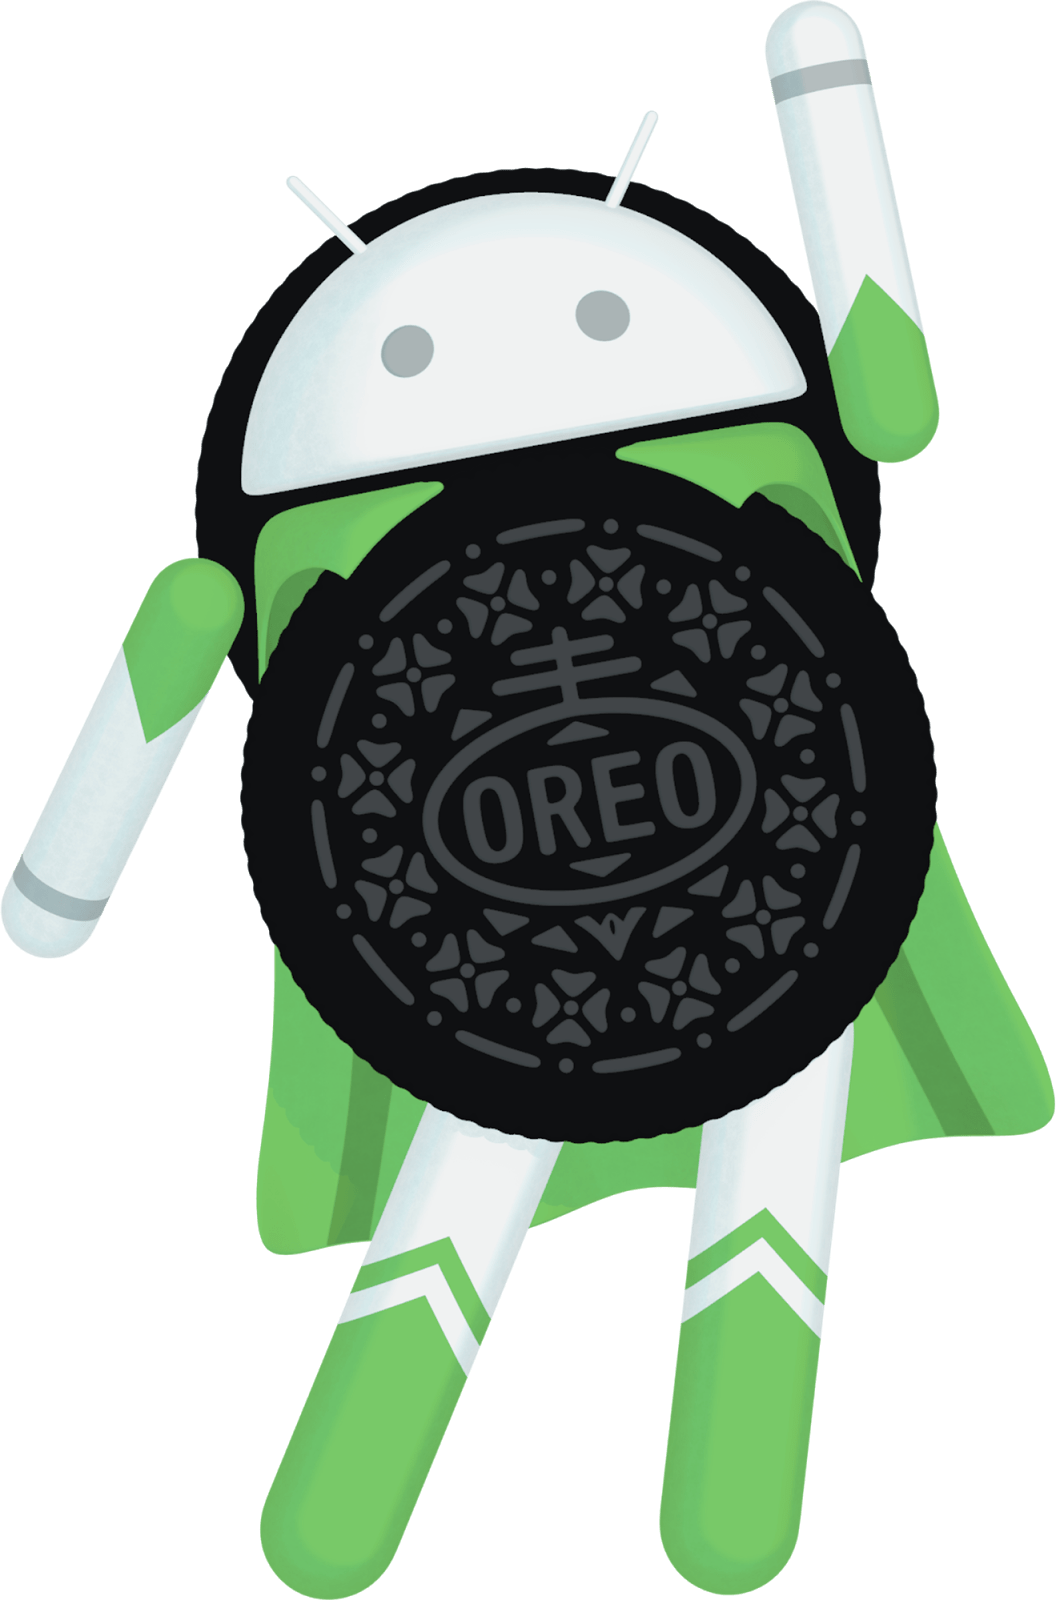 Oreo clipart round thing. What is android teched